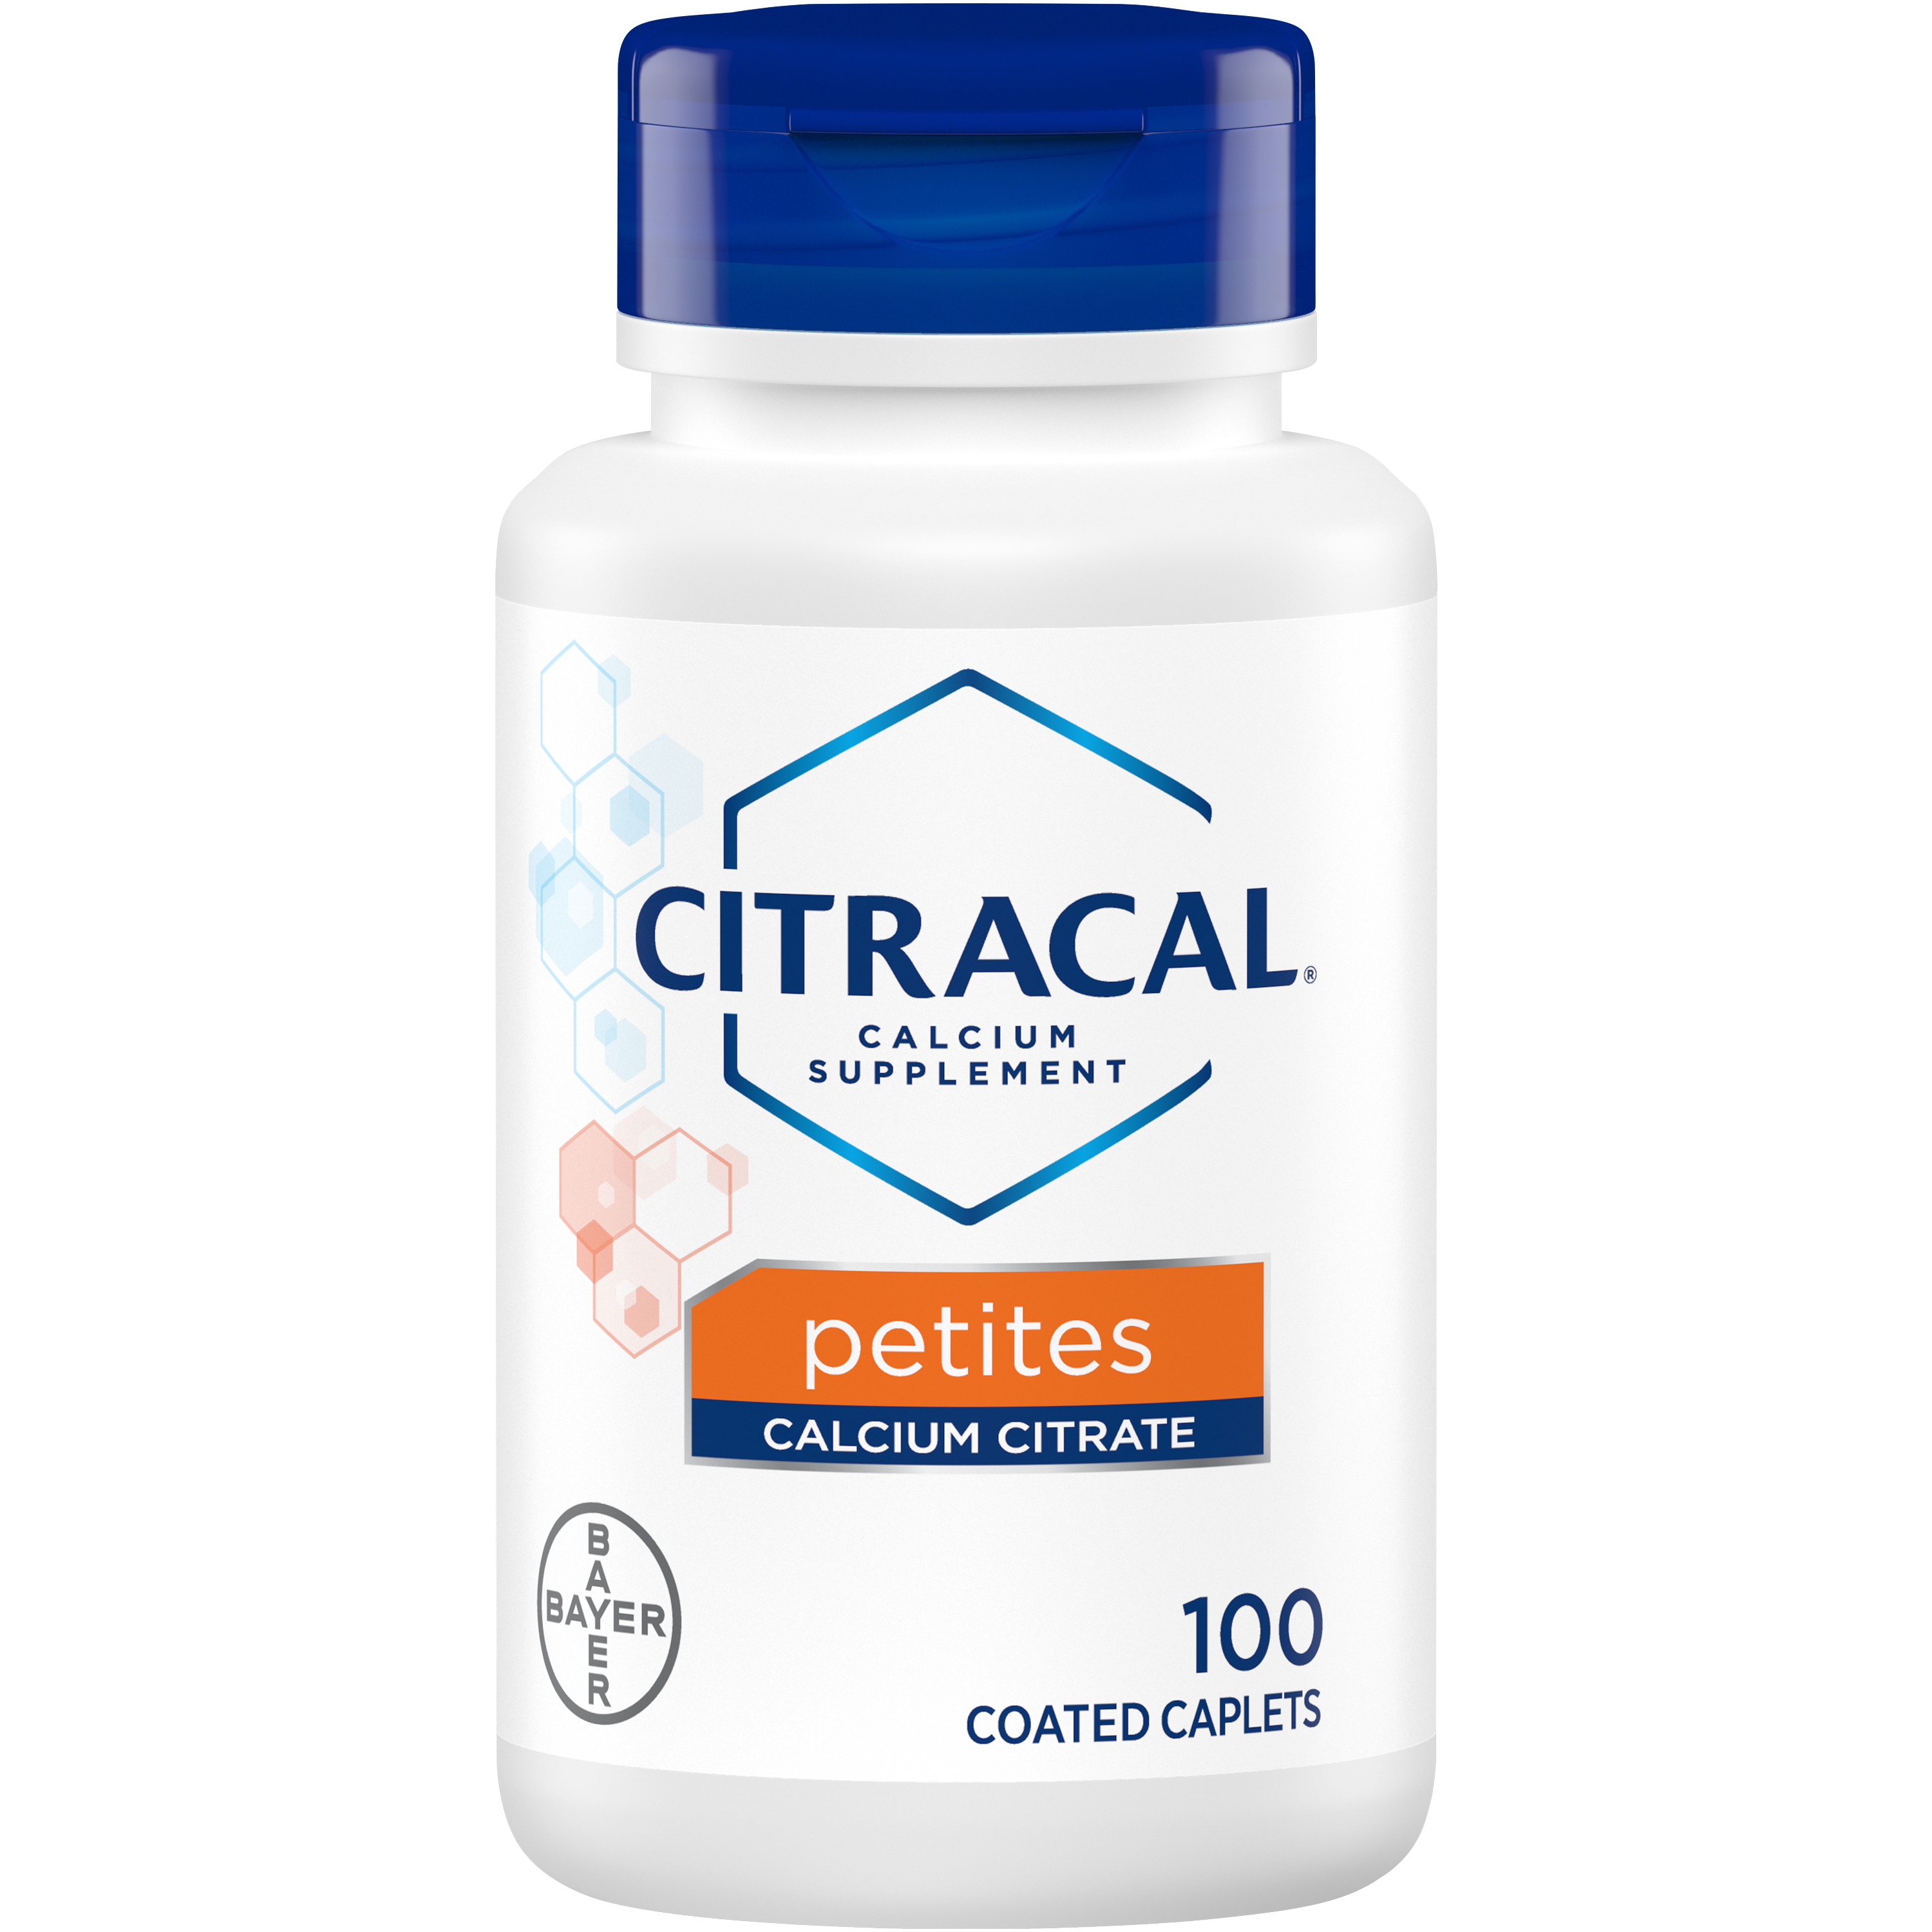 Citracal Petites, Calcium and Vitamin D3 Supplement to Support Bone Health*, 100 Easy-to-Take Caplets